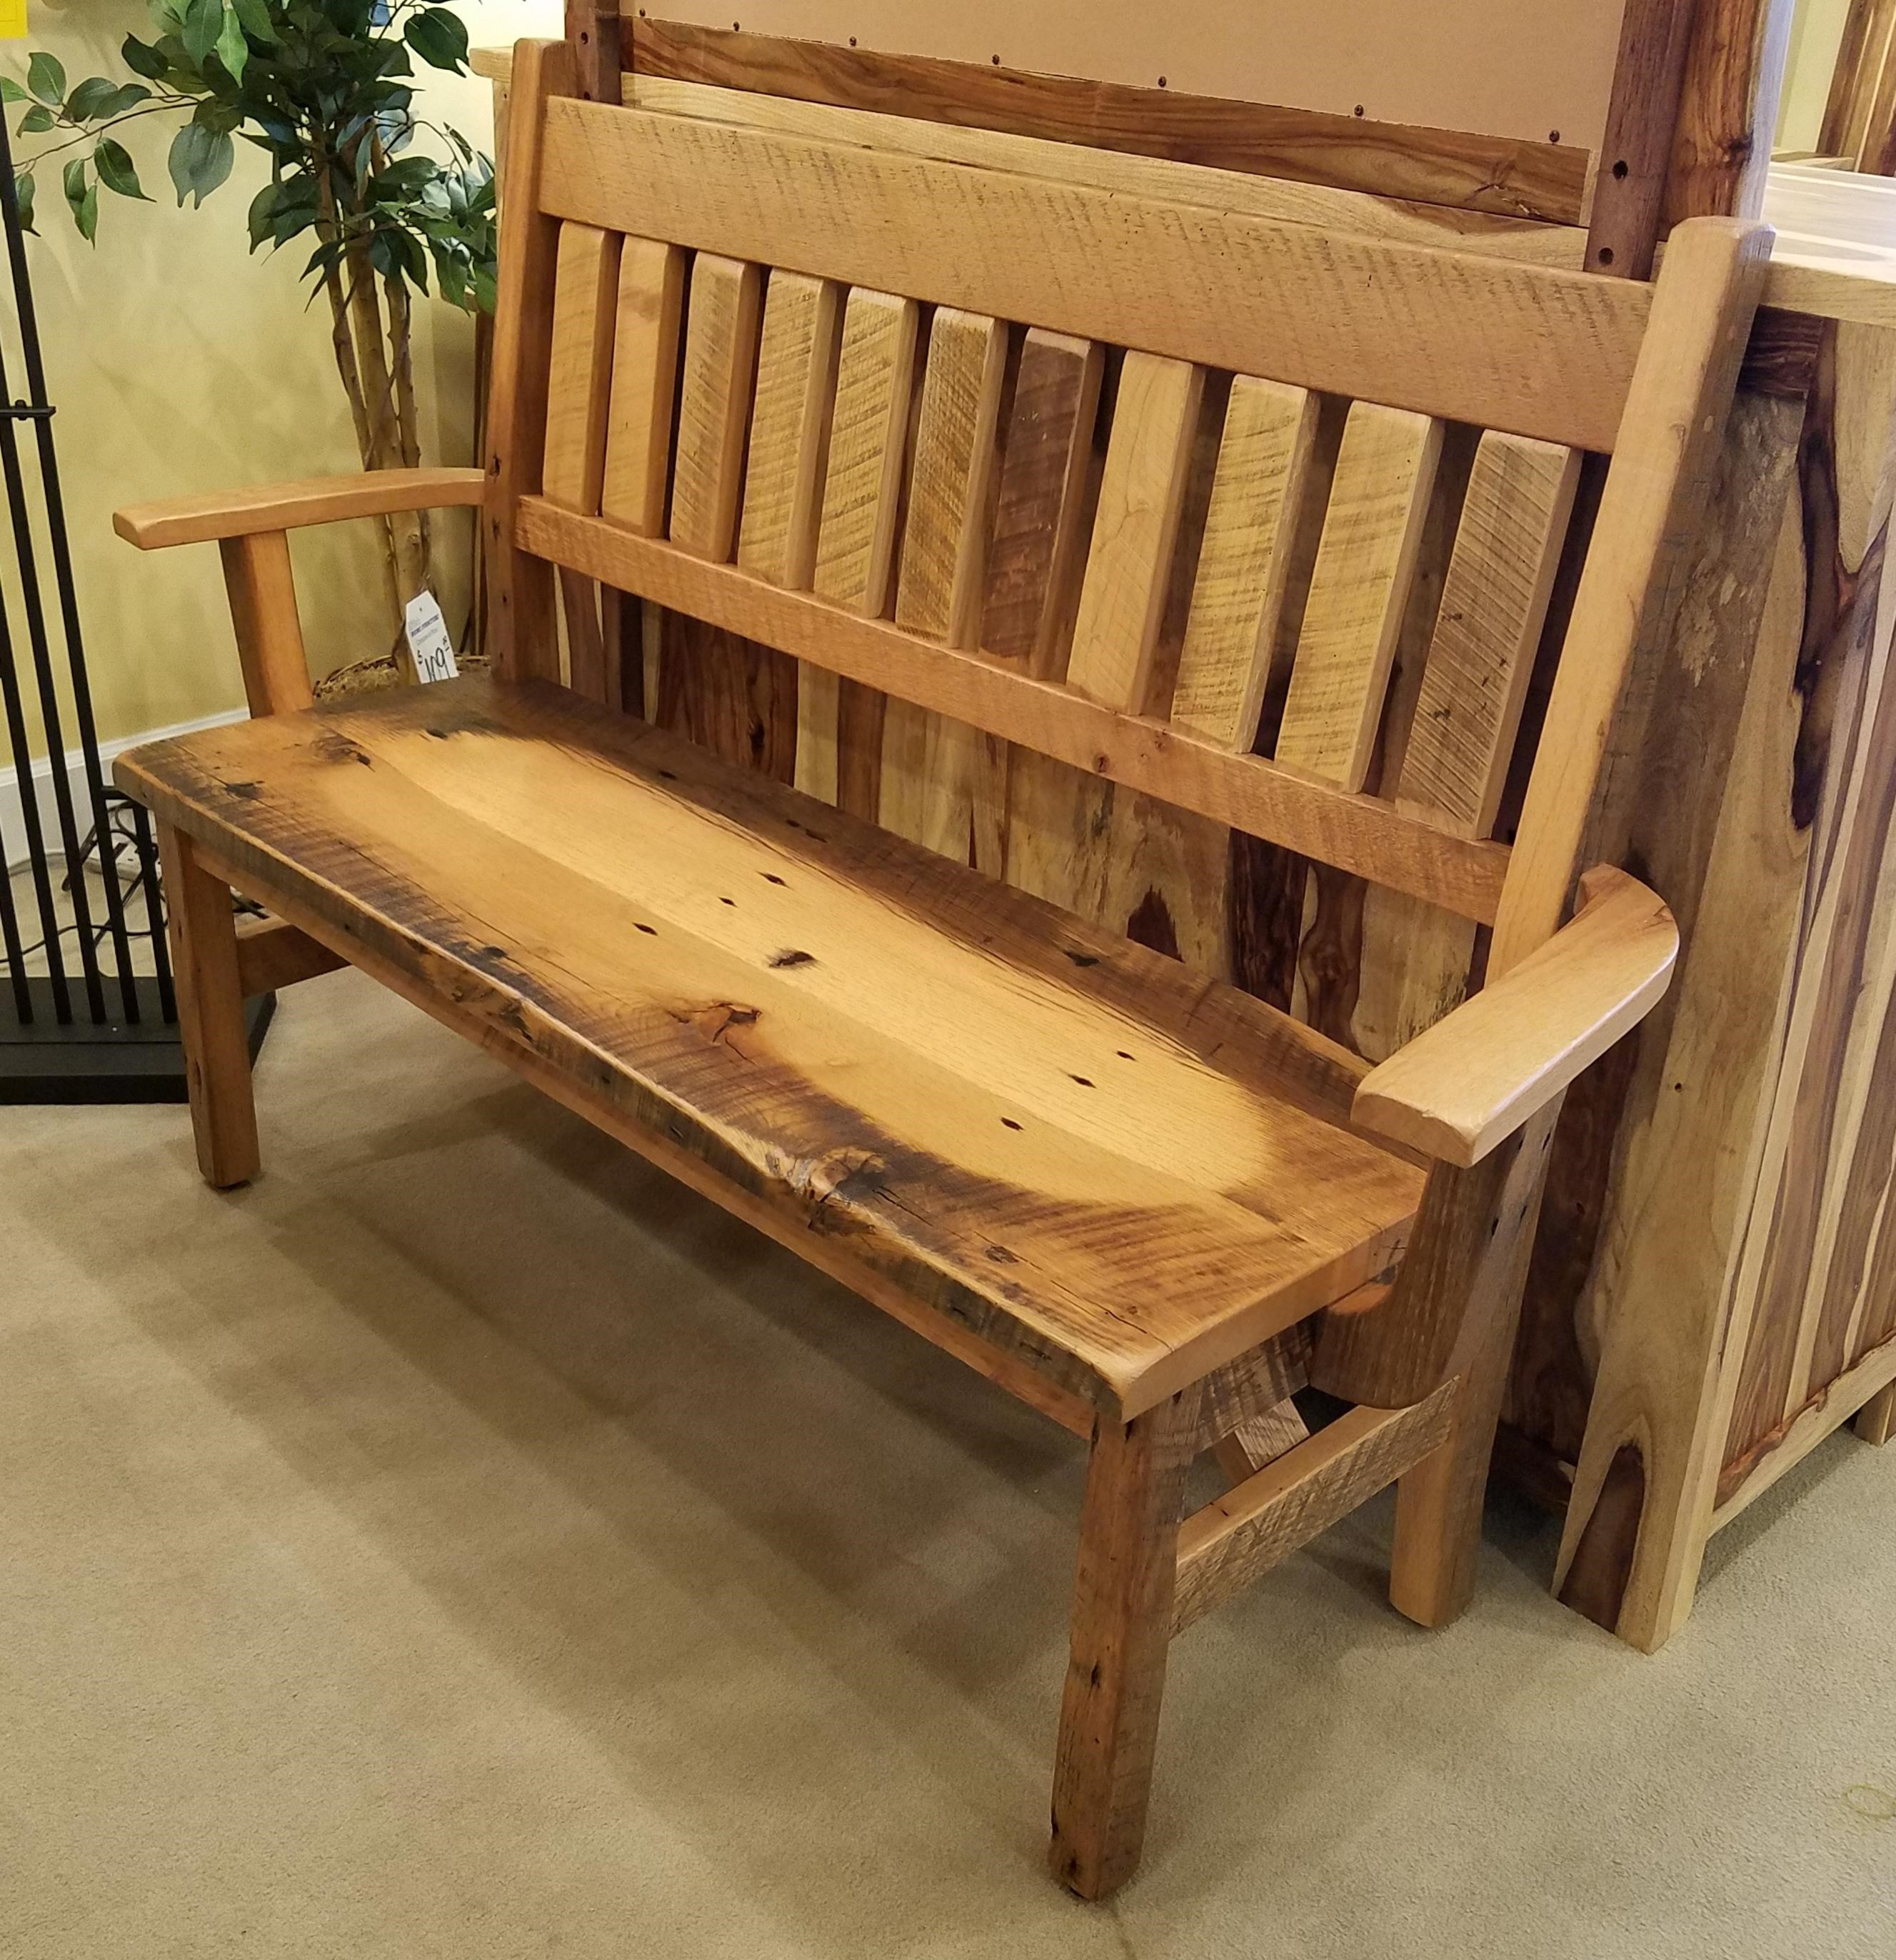 Reclaimed Barnwood Bench by Daniel's Amish at Rife's Home Furniture